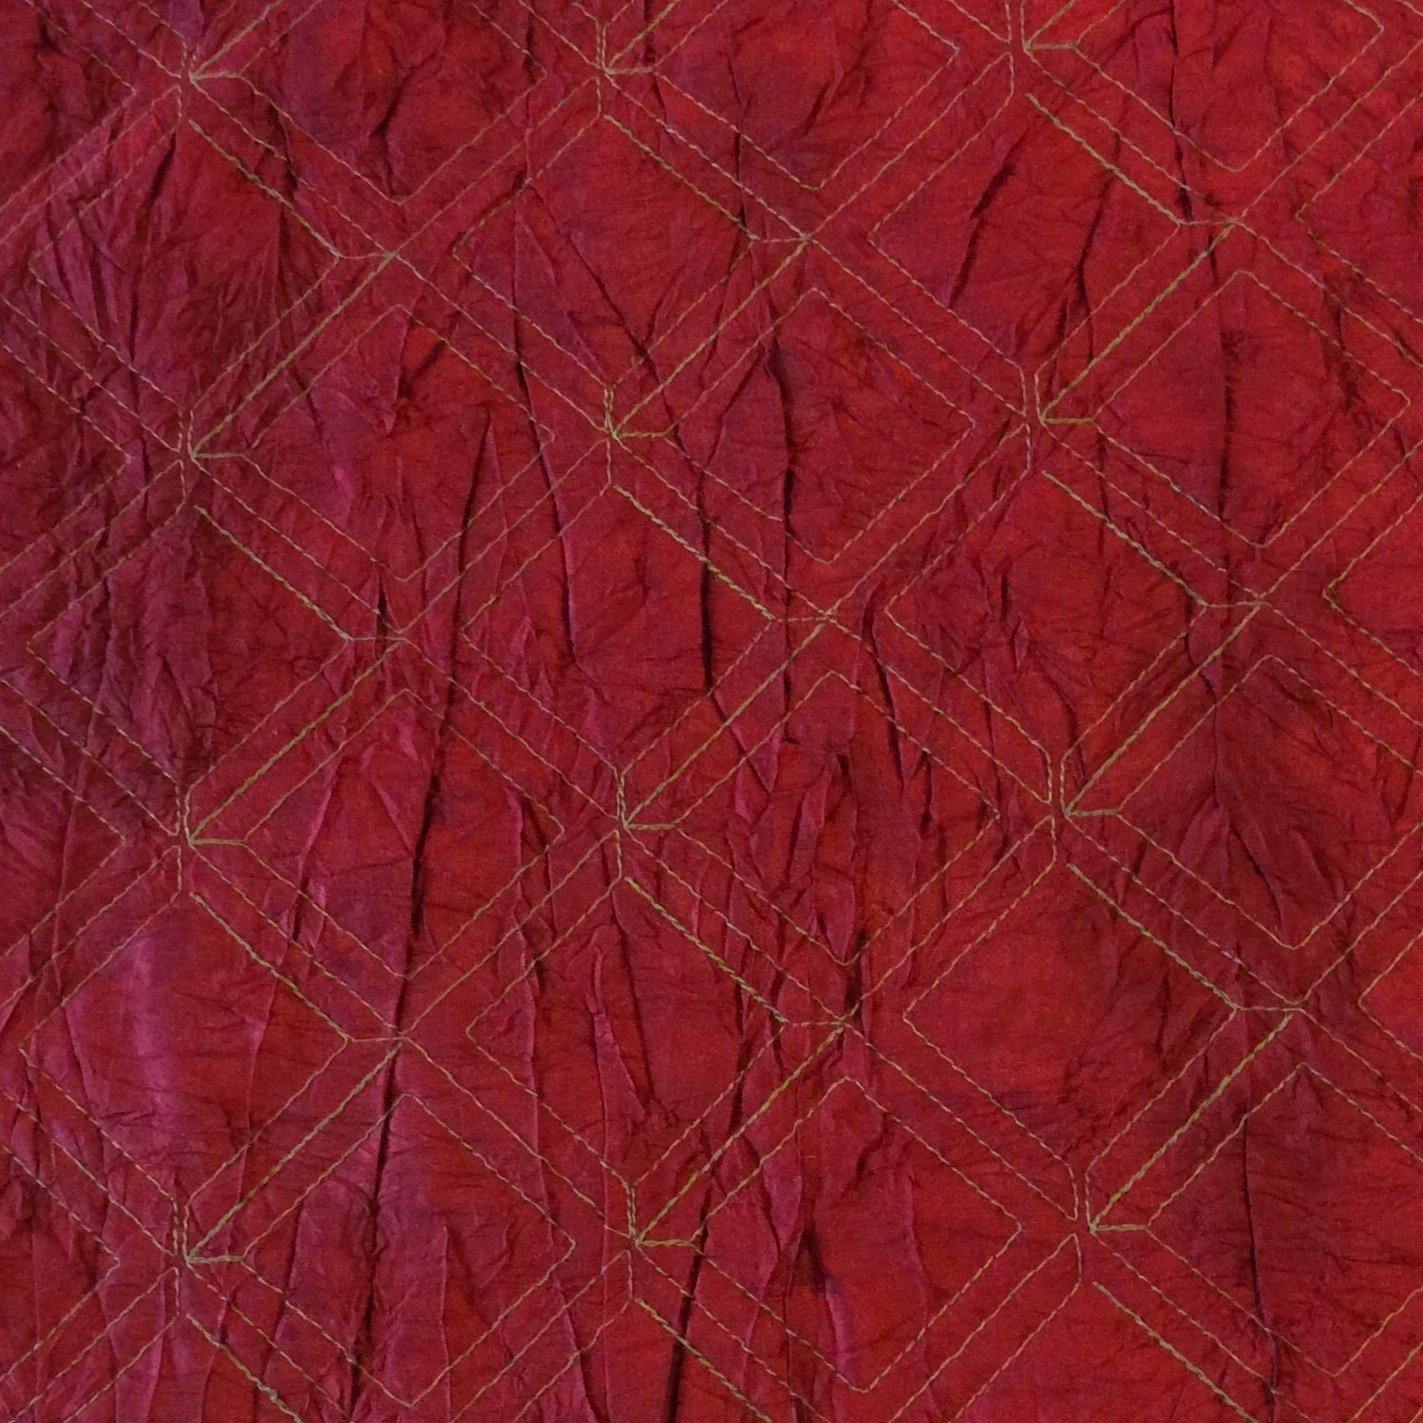 NL025 Red Diamond Stitched Quilted 100% Silk Fabric Home Dec Fabric